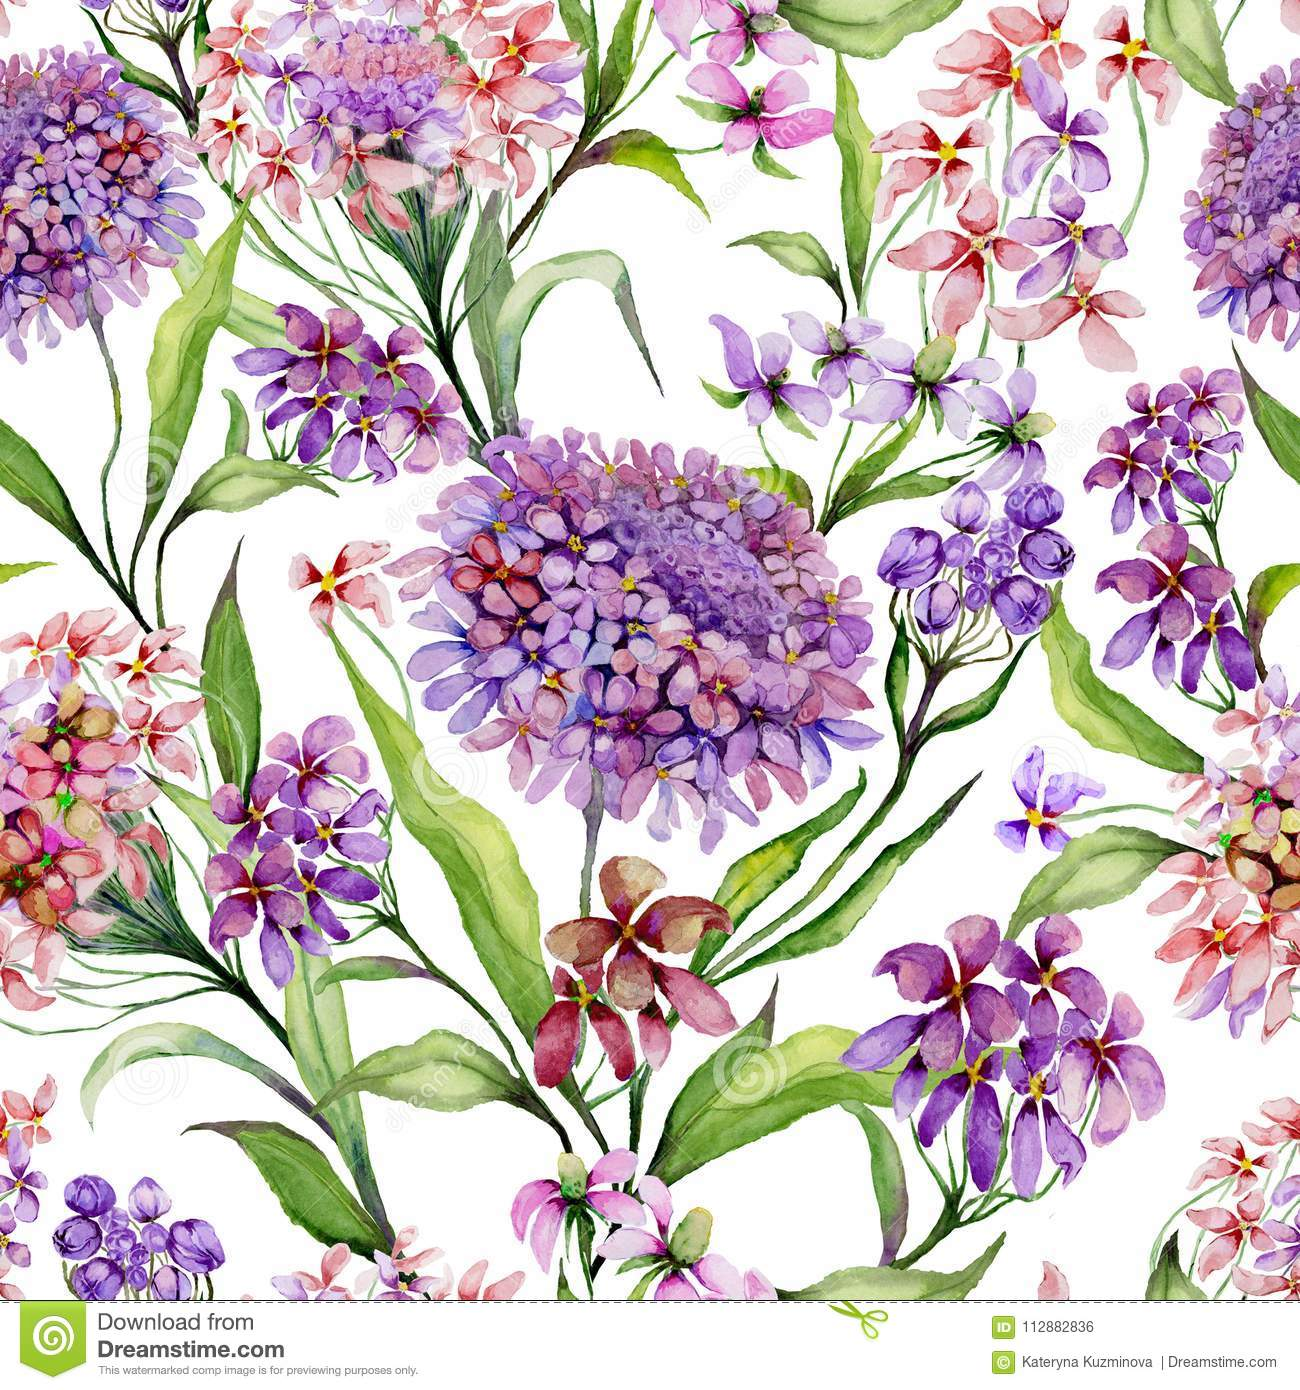 Beautiful iberis flowers with green leaves on white background. Seamless floral pattern. Watercolor painting.